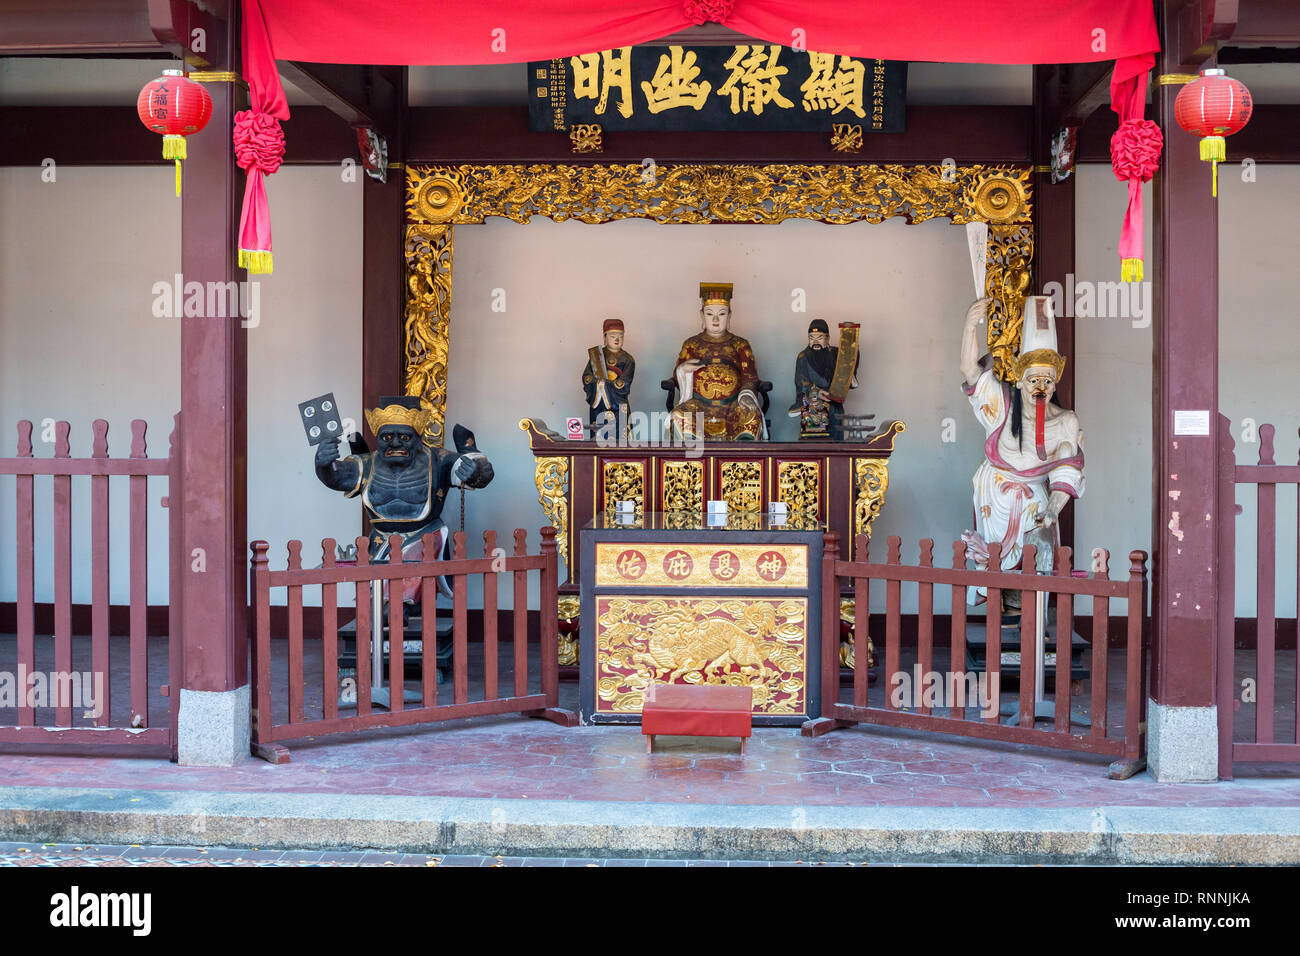 Singapore Thian Hock Keng Taoist Temple, Statue of City Magistrate Cheng Huang, flanked by General Xie on right, General Fan on left. - Stock Image